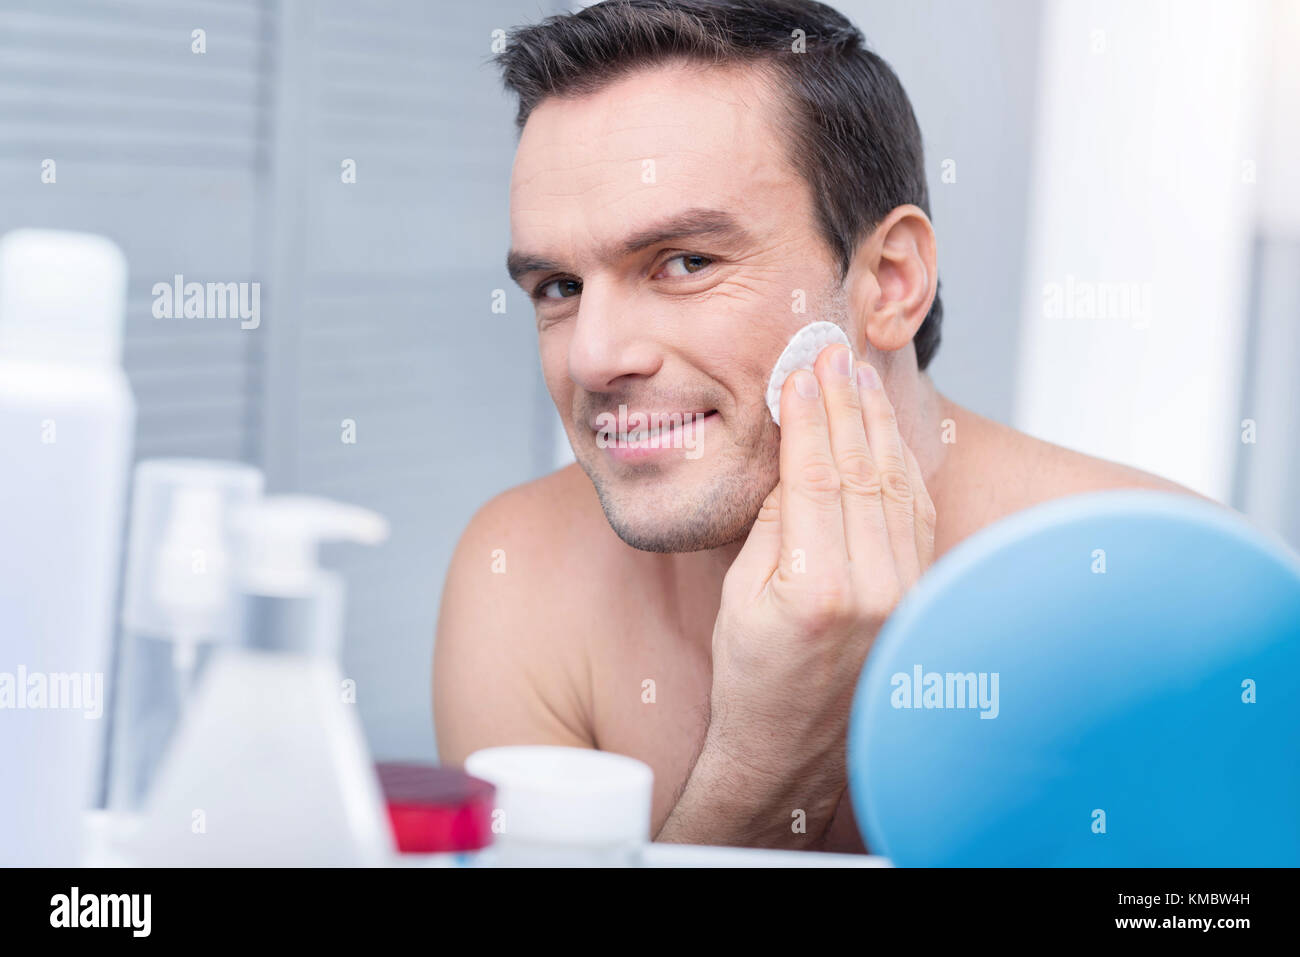 Cunning handsome man wiping his face  - Stock Image